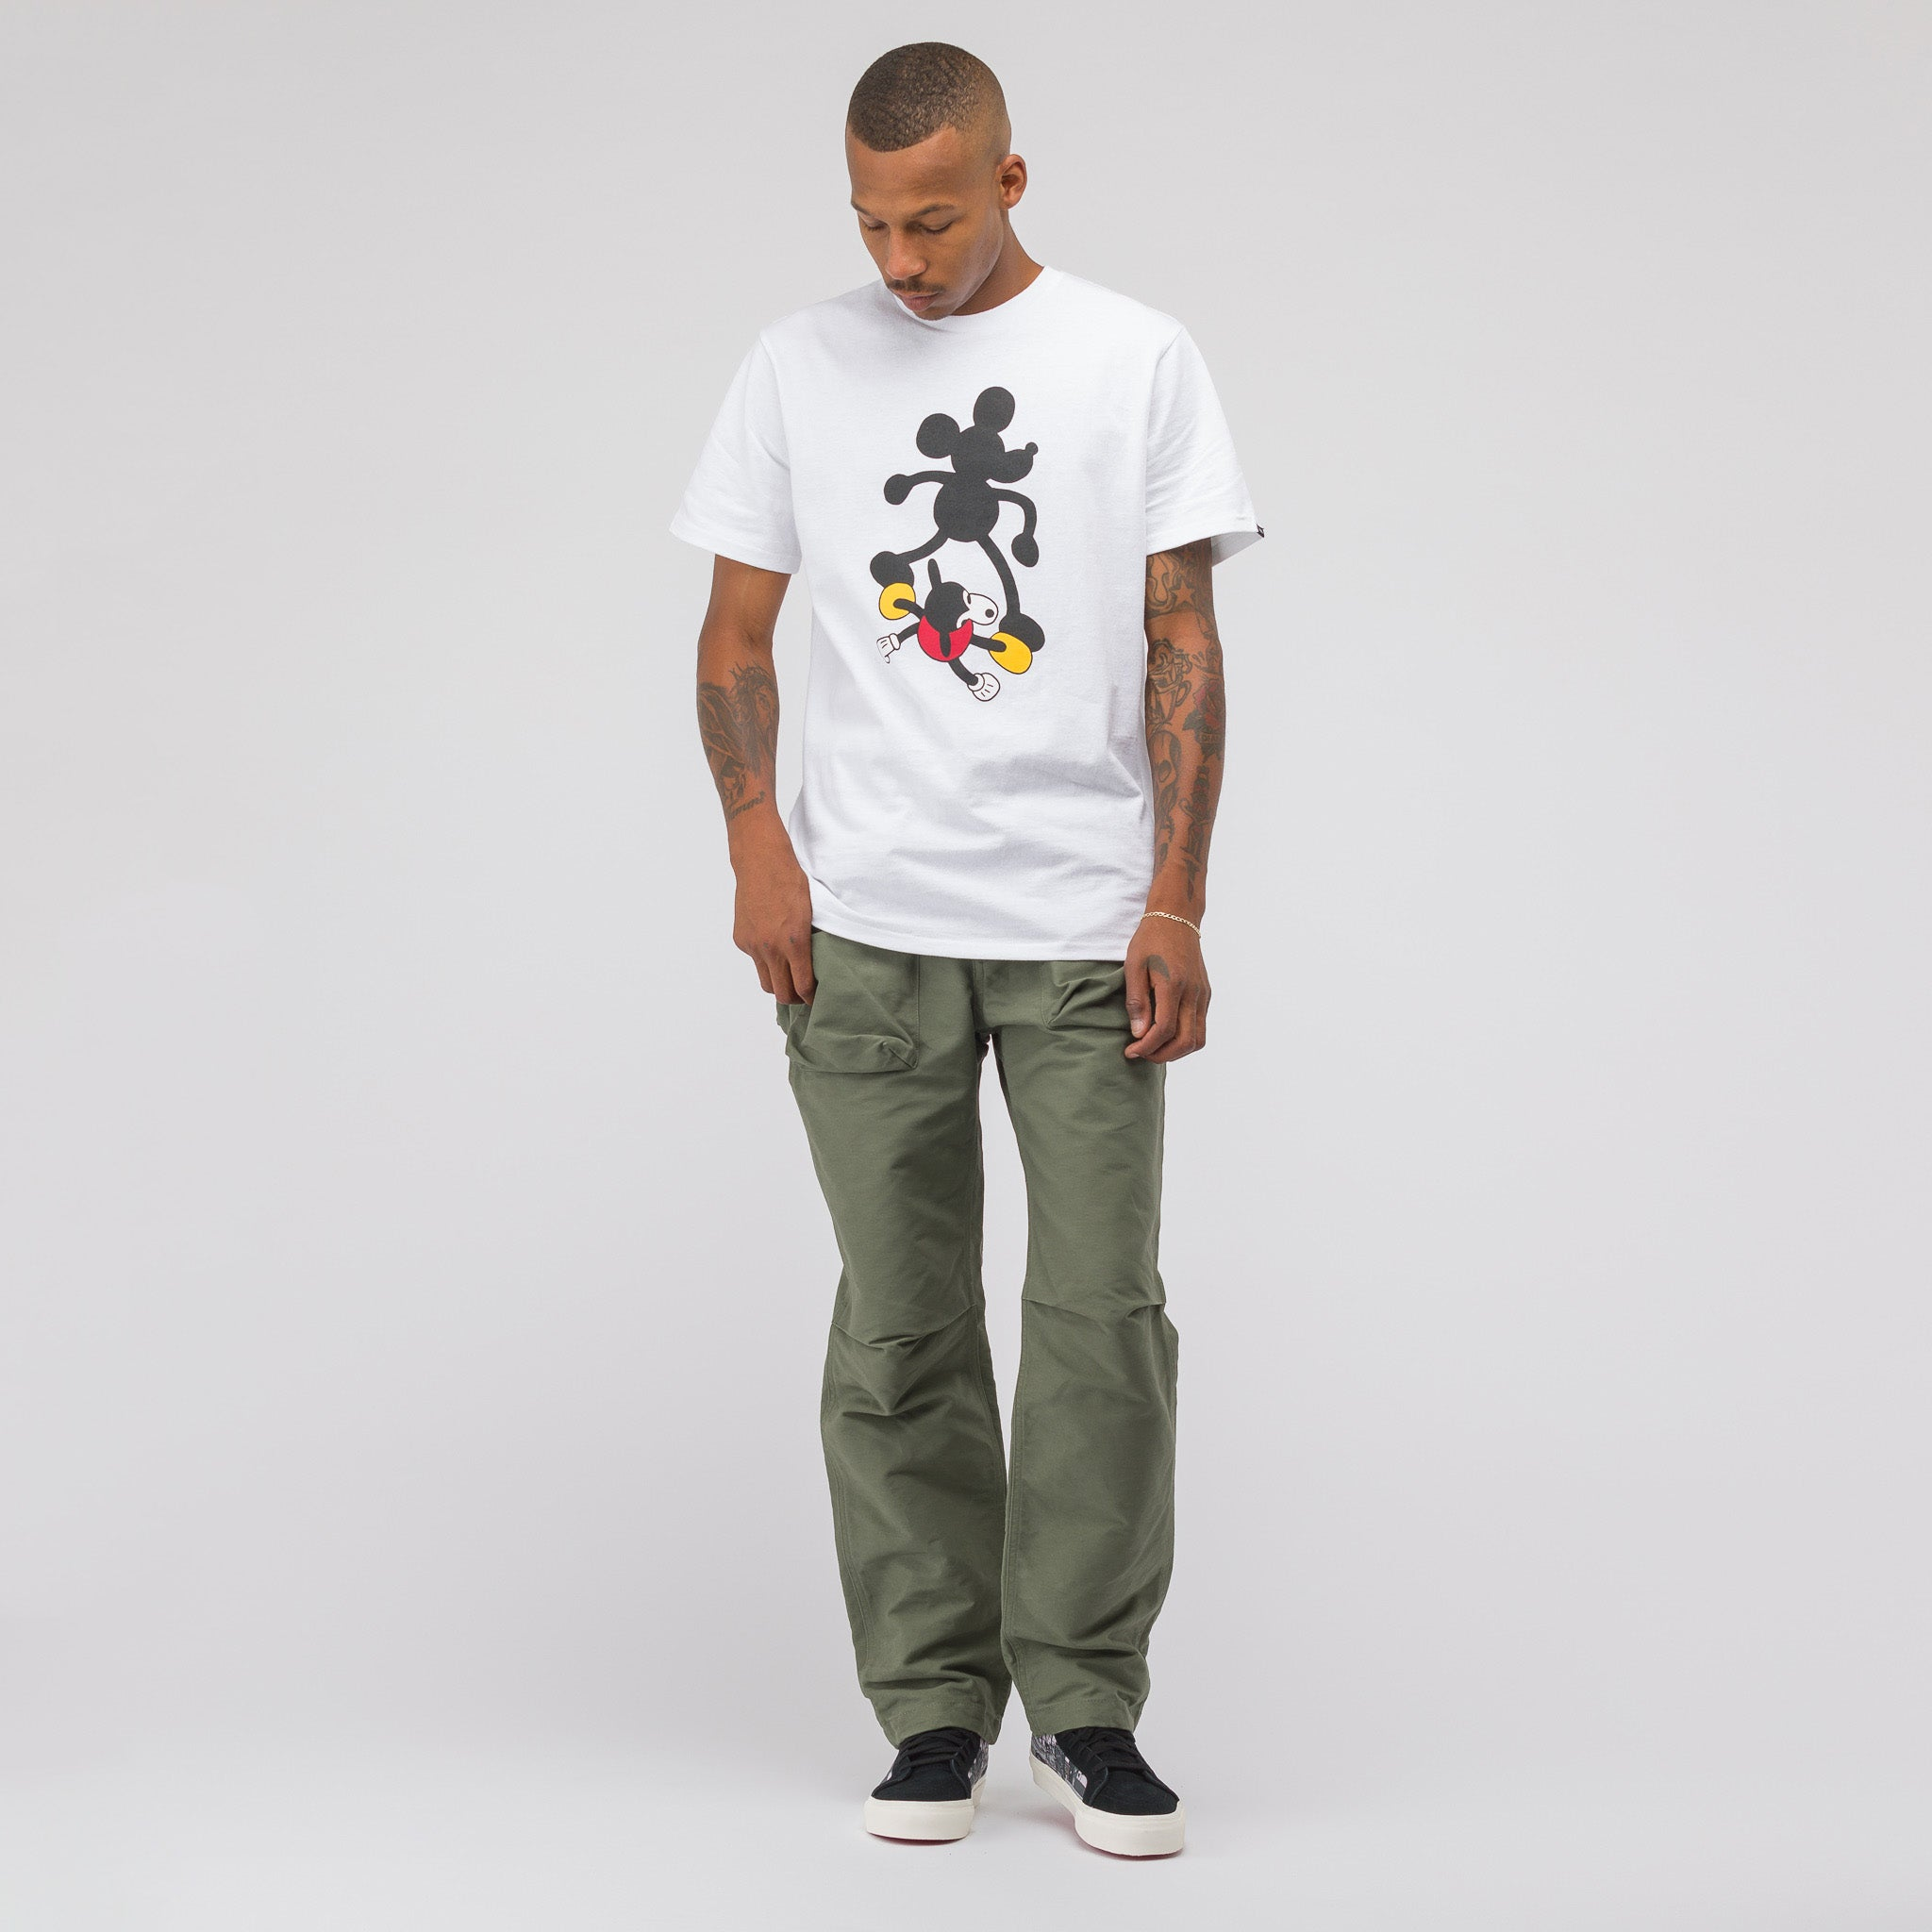 x Disney Mickey's 90th Birthday T-Shirt in White